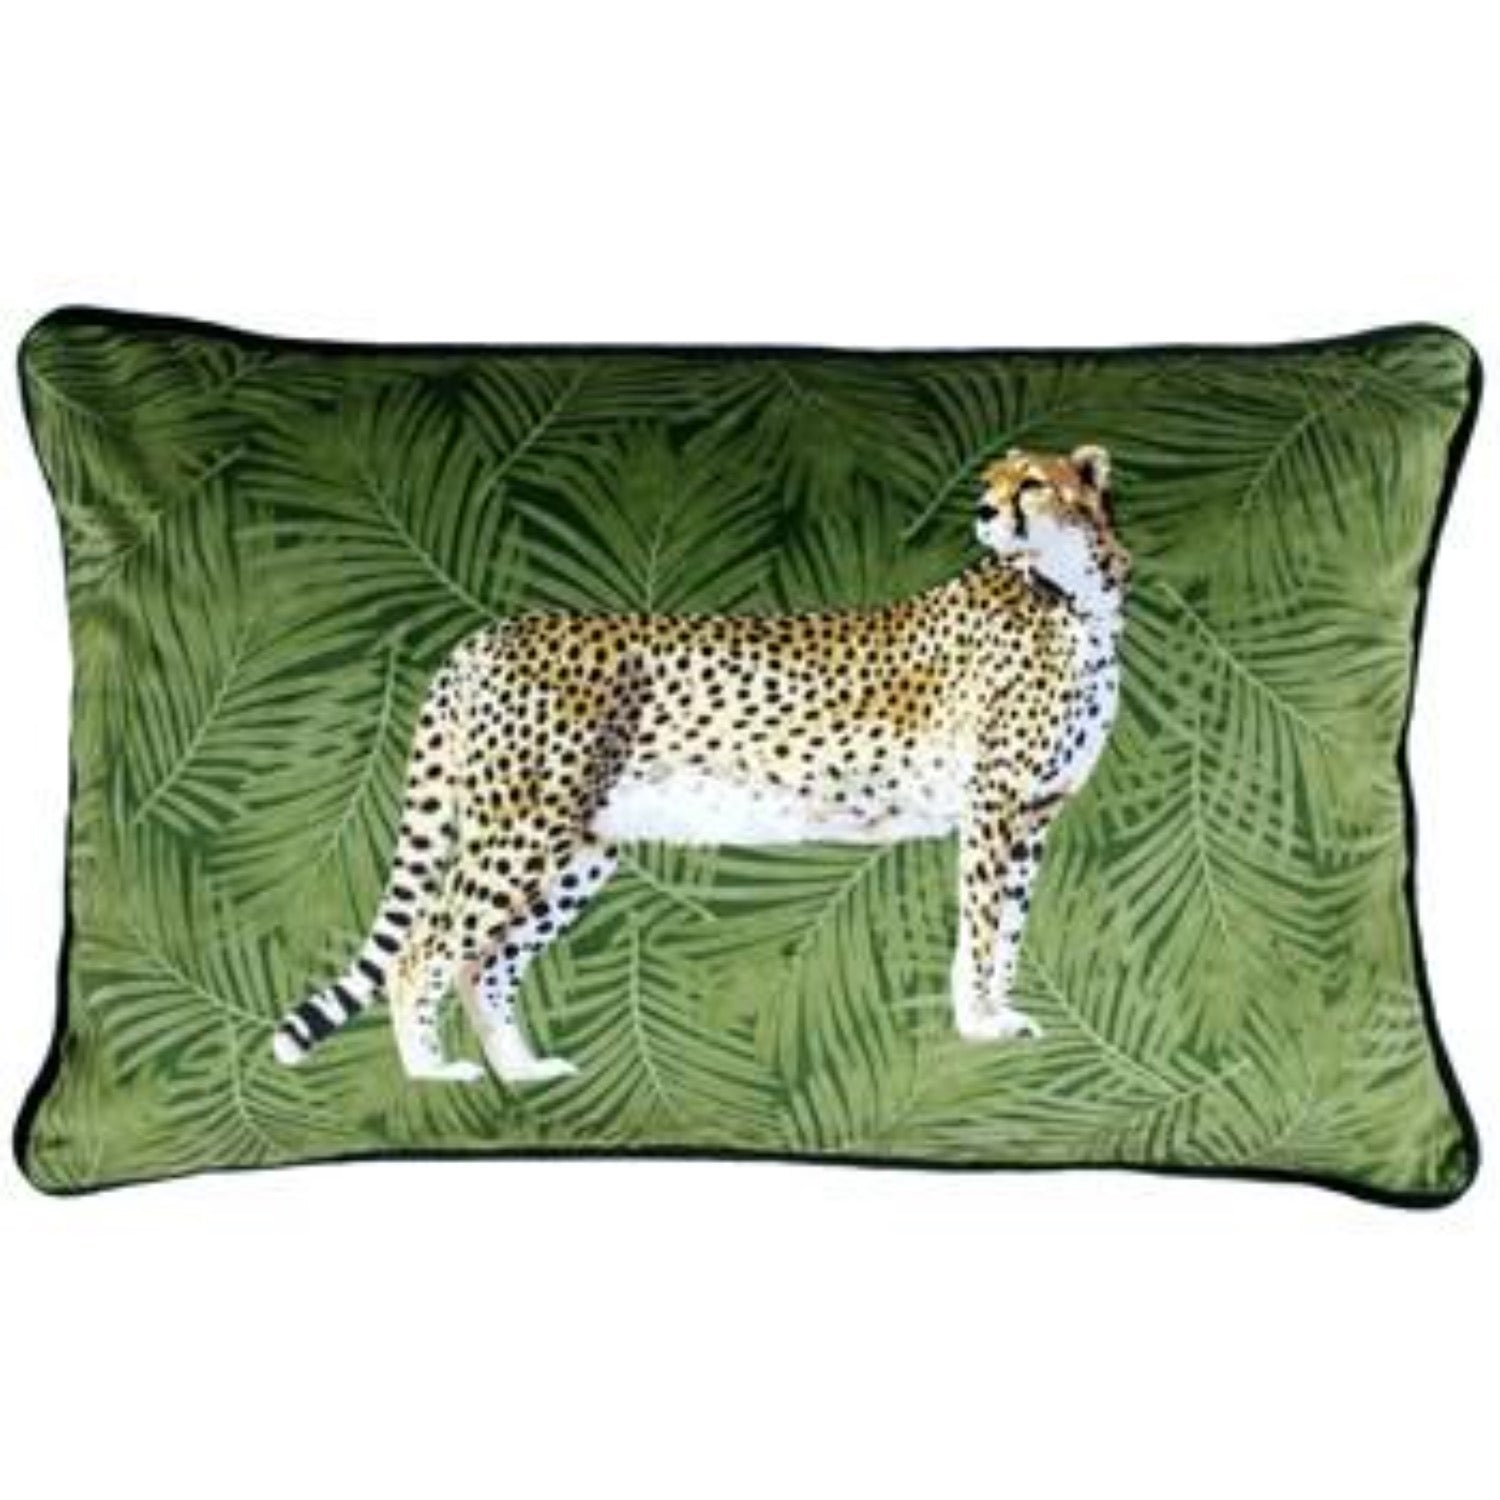 Cheetah Jungle Cushion